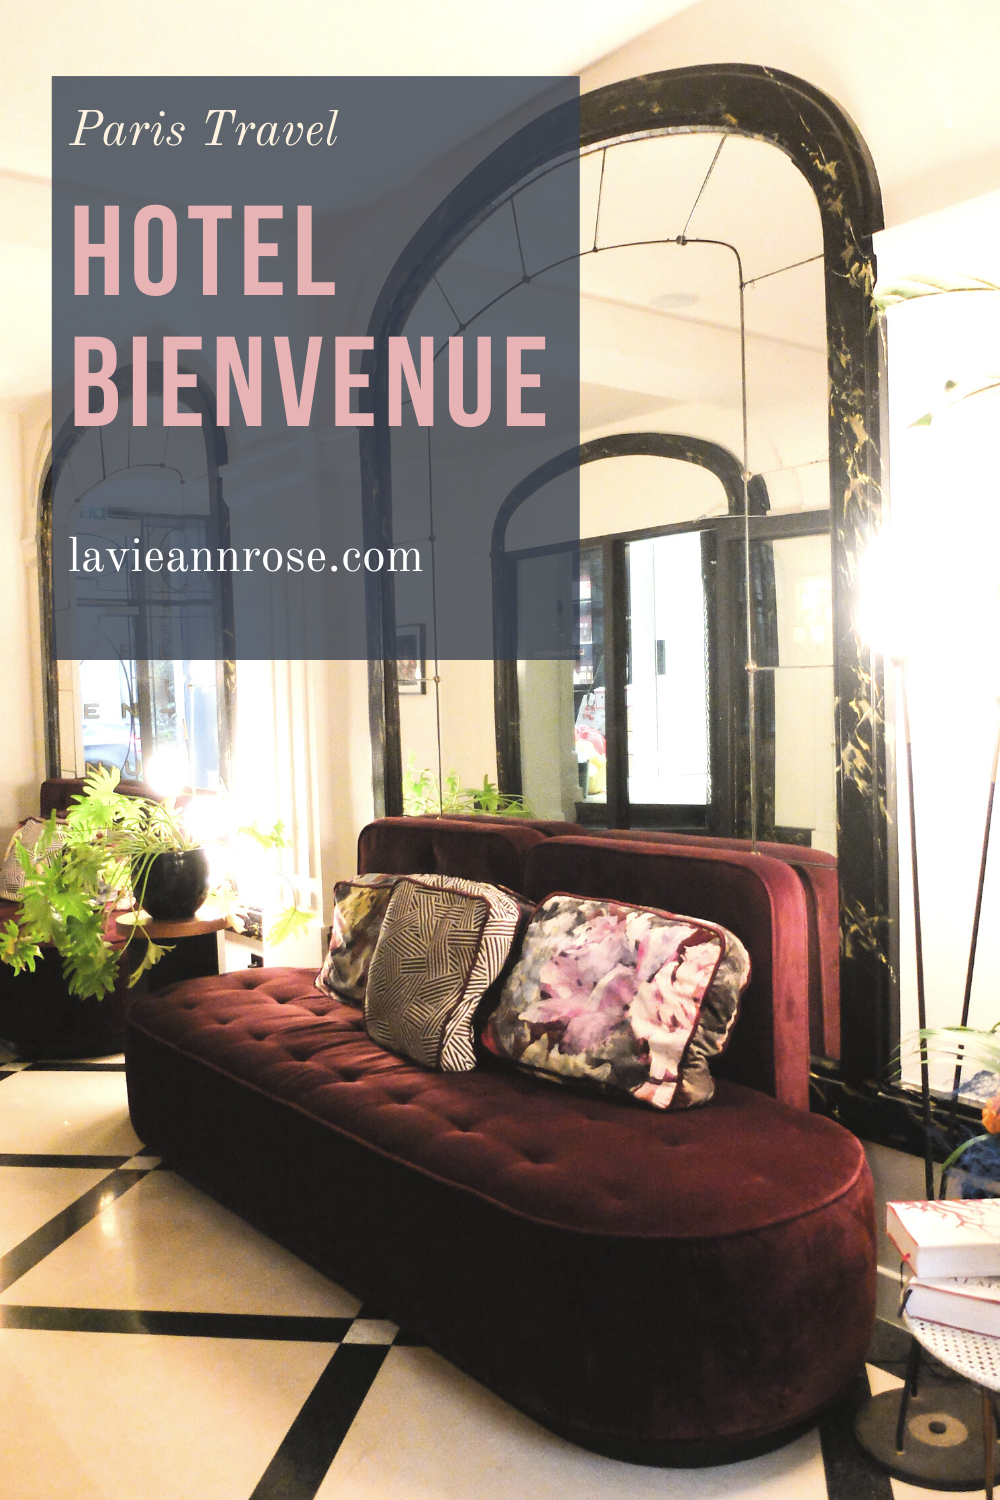 Sharing details about our stay at the Hotel Bienvenue Boutique Hotel in Paris with the prettiest floral decor, fantastic continental breakfast and more.#parisphotography #francetravel #frenchdecor #frenchhomedecor #francophilelifestyle #parisianchic #paristravel #parishotel #paris #france